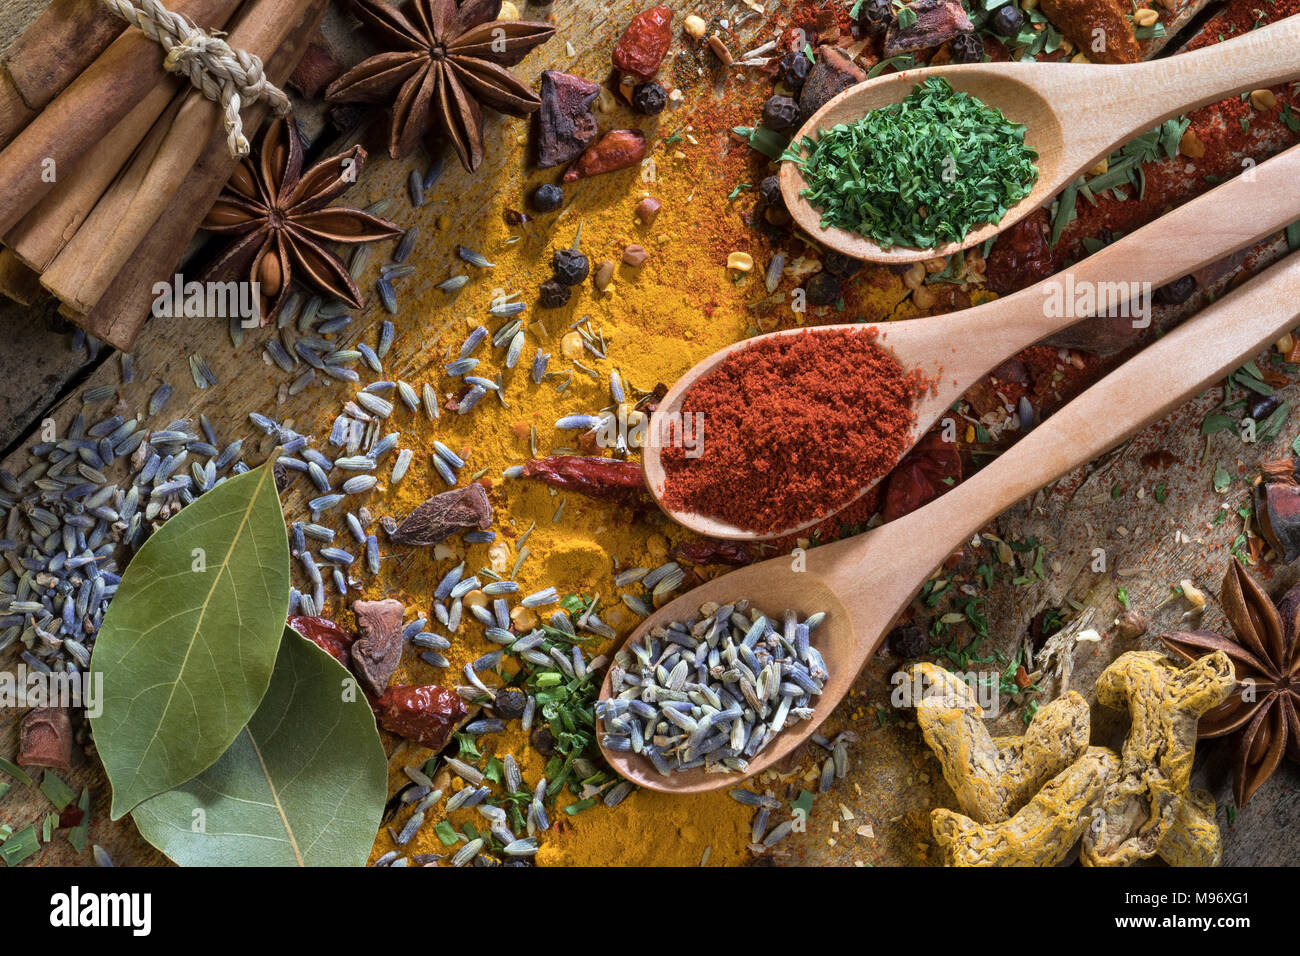 Herbs and Spices on a rustic farmhouse table. Used to add flavor and seasoning to cooking. - Stock Image